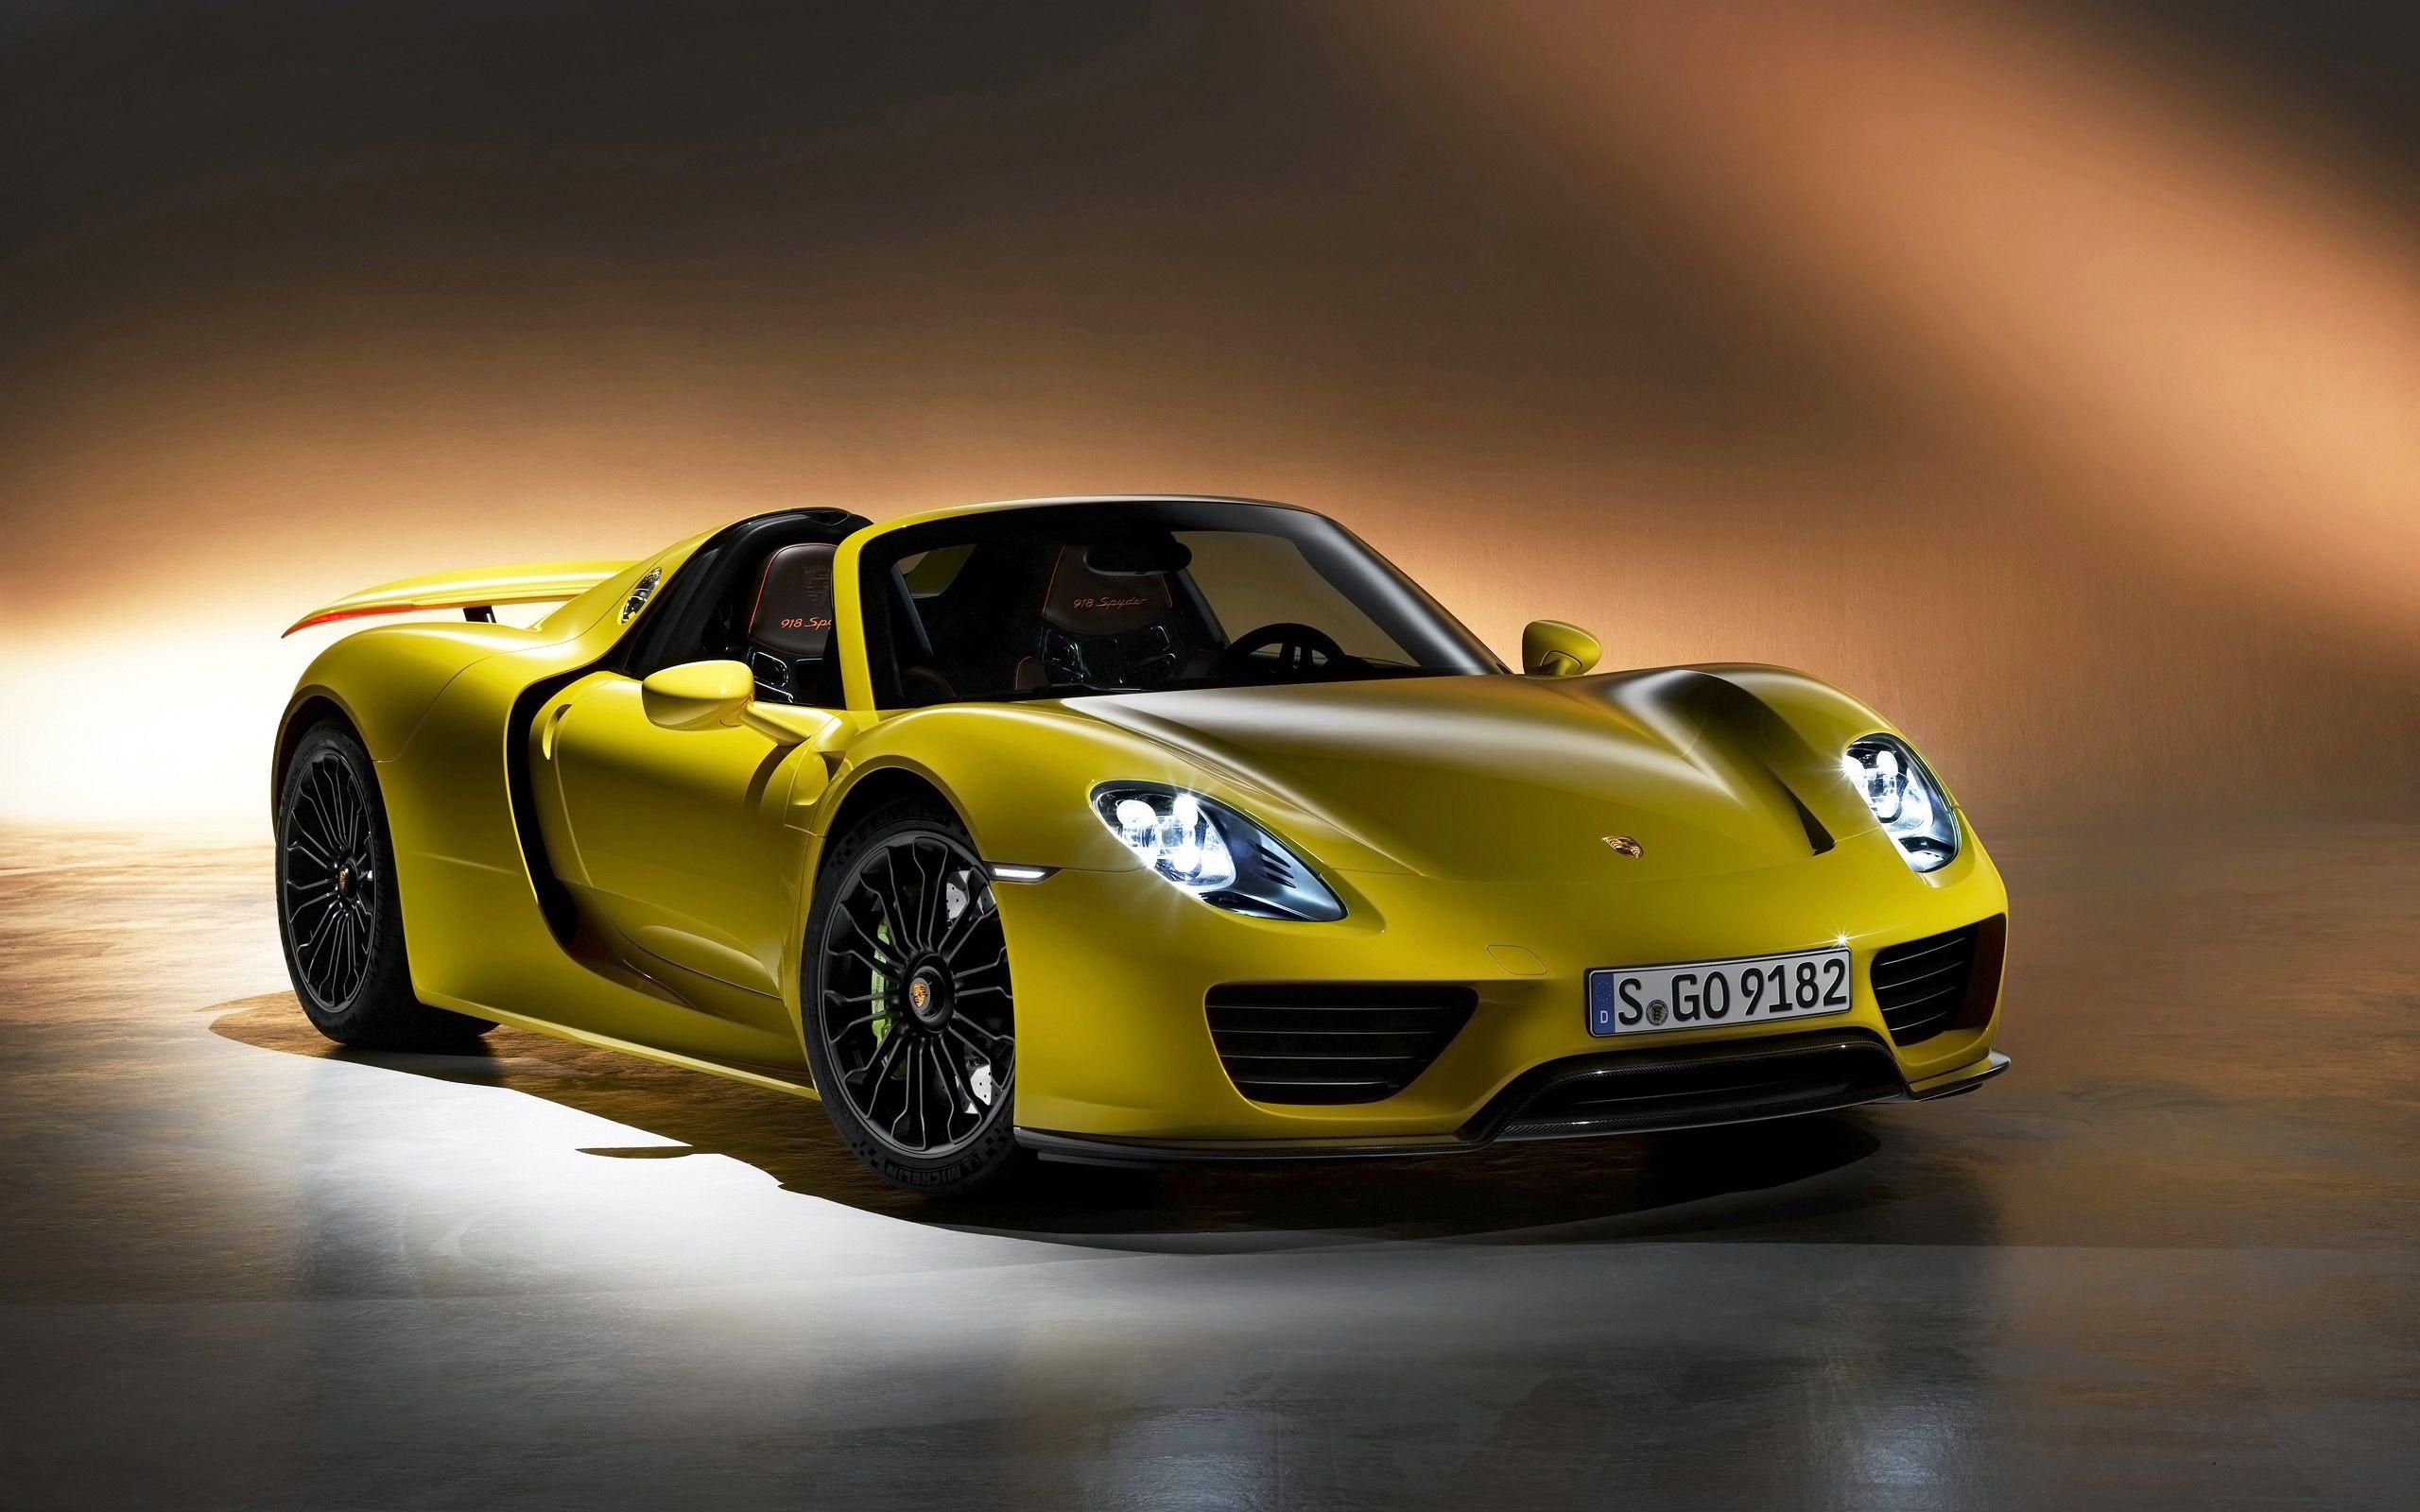 2014 Porsche 918 Spyder Wallpapers